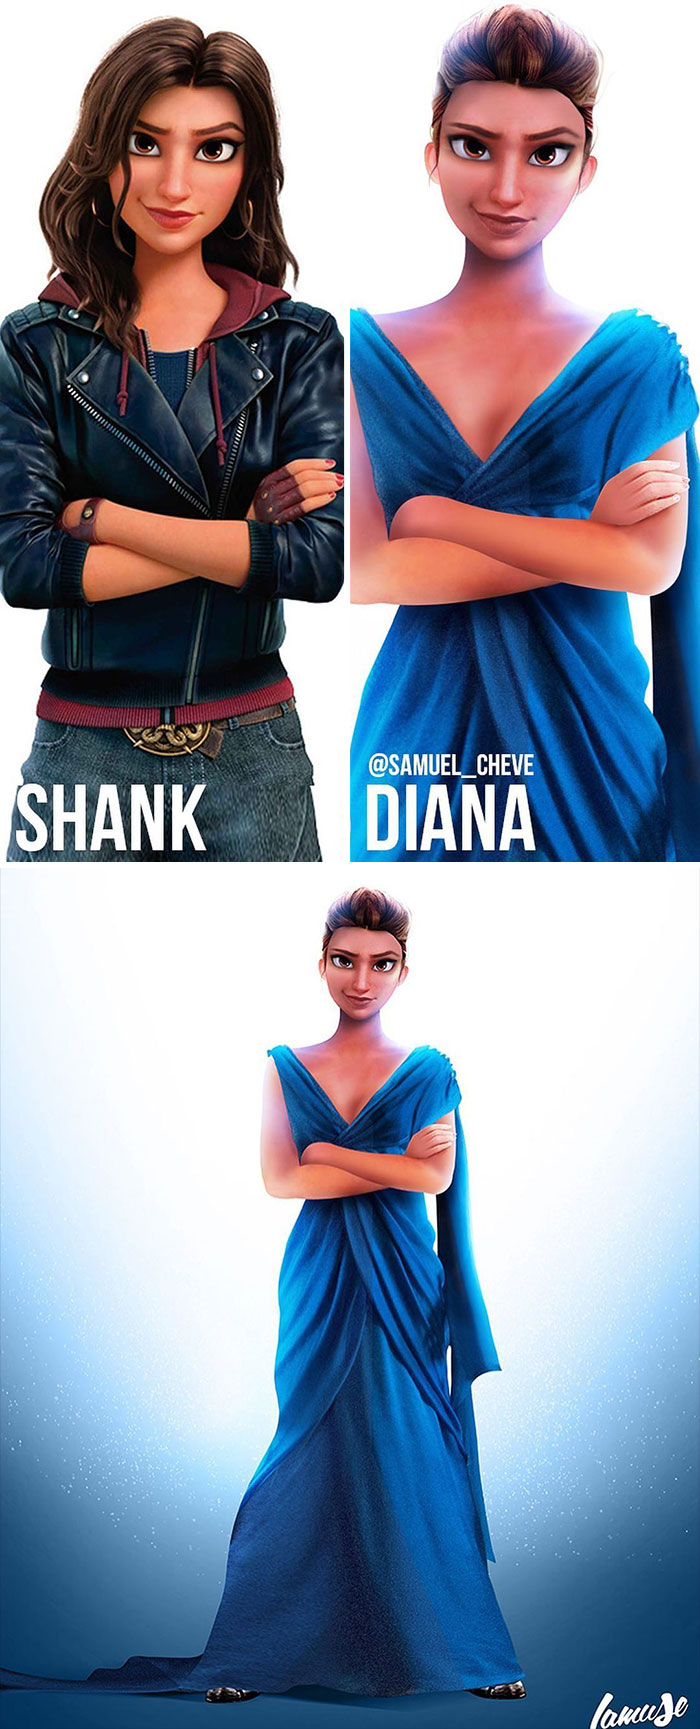 Shank And Diana 'Wonder Woman'